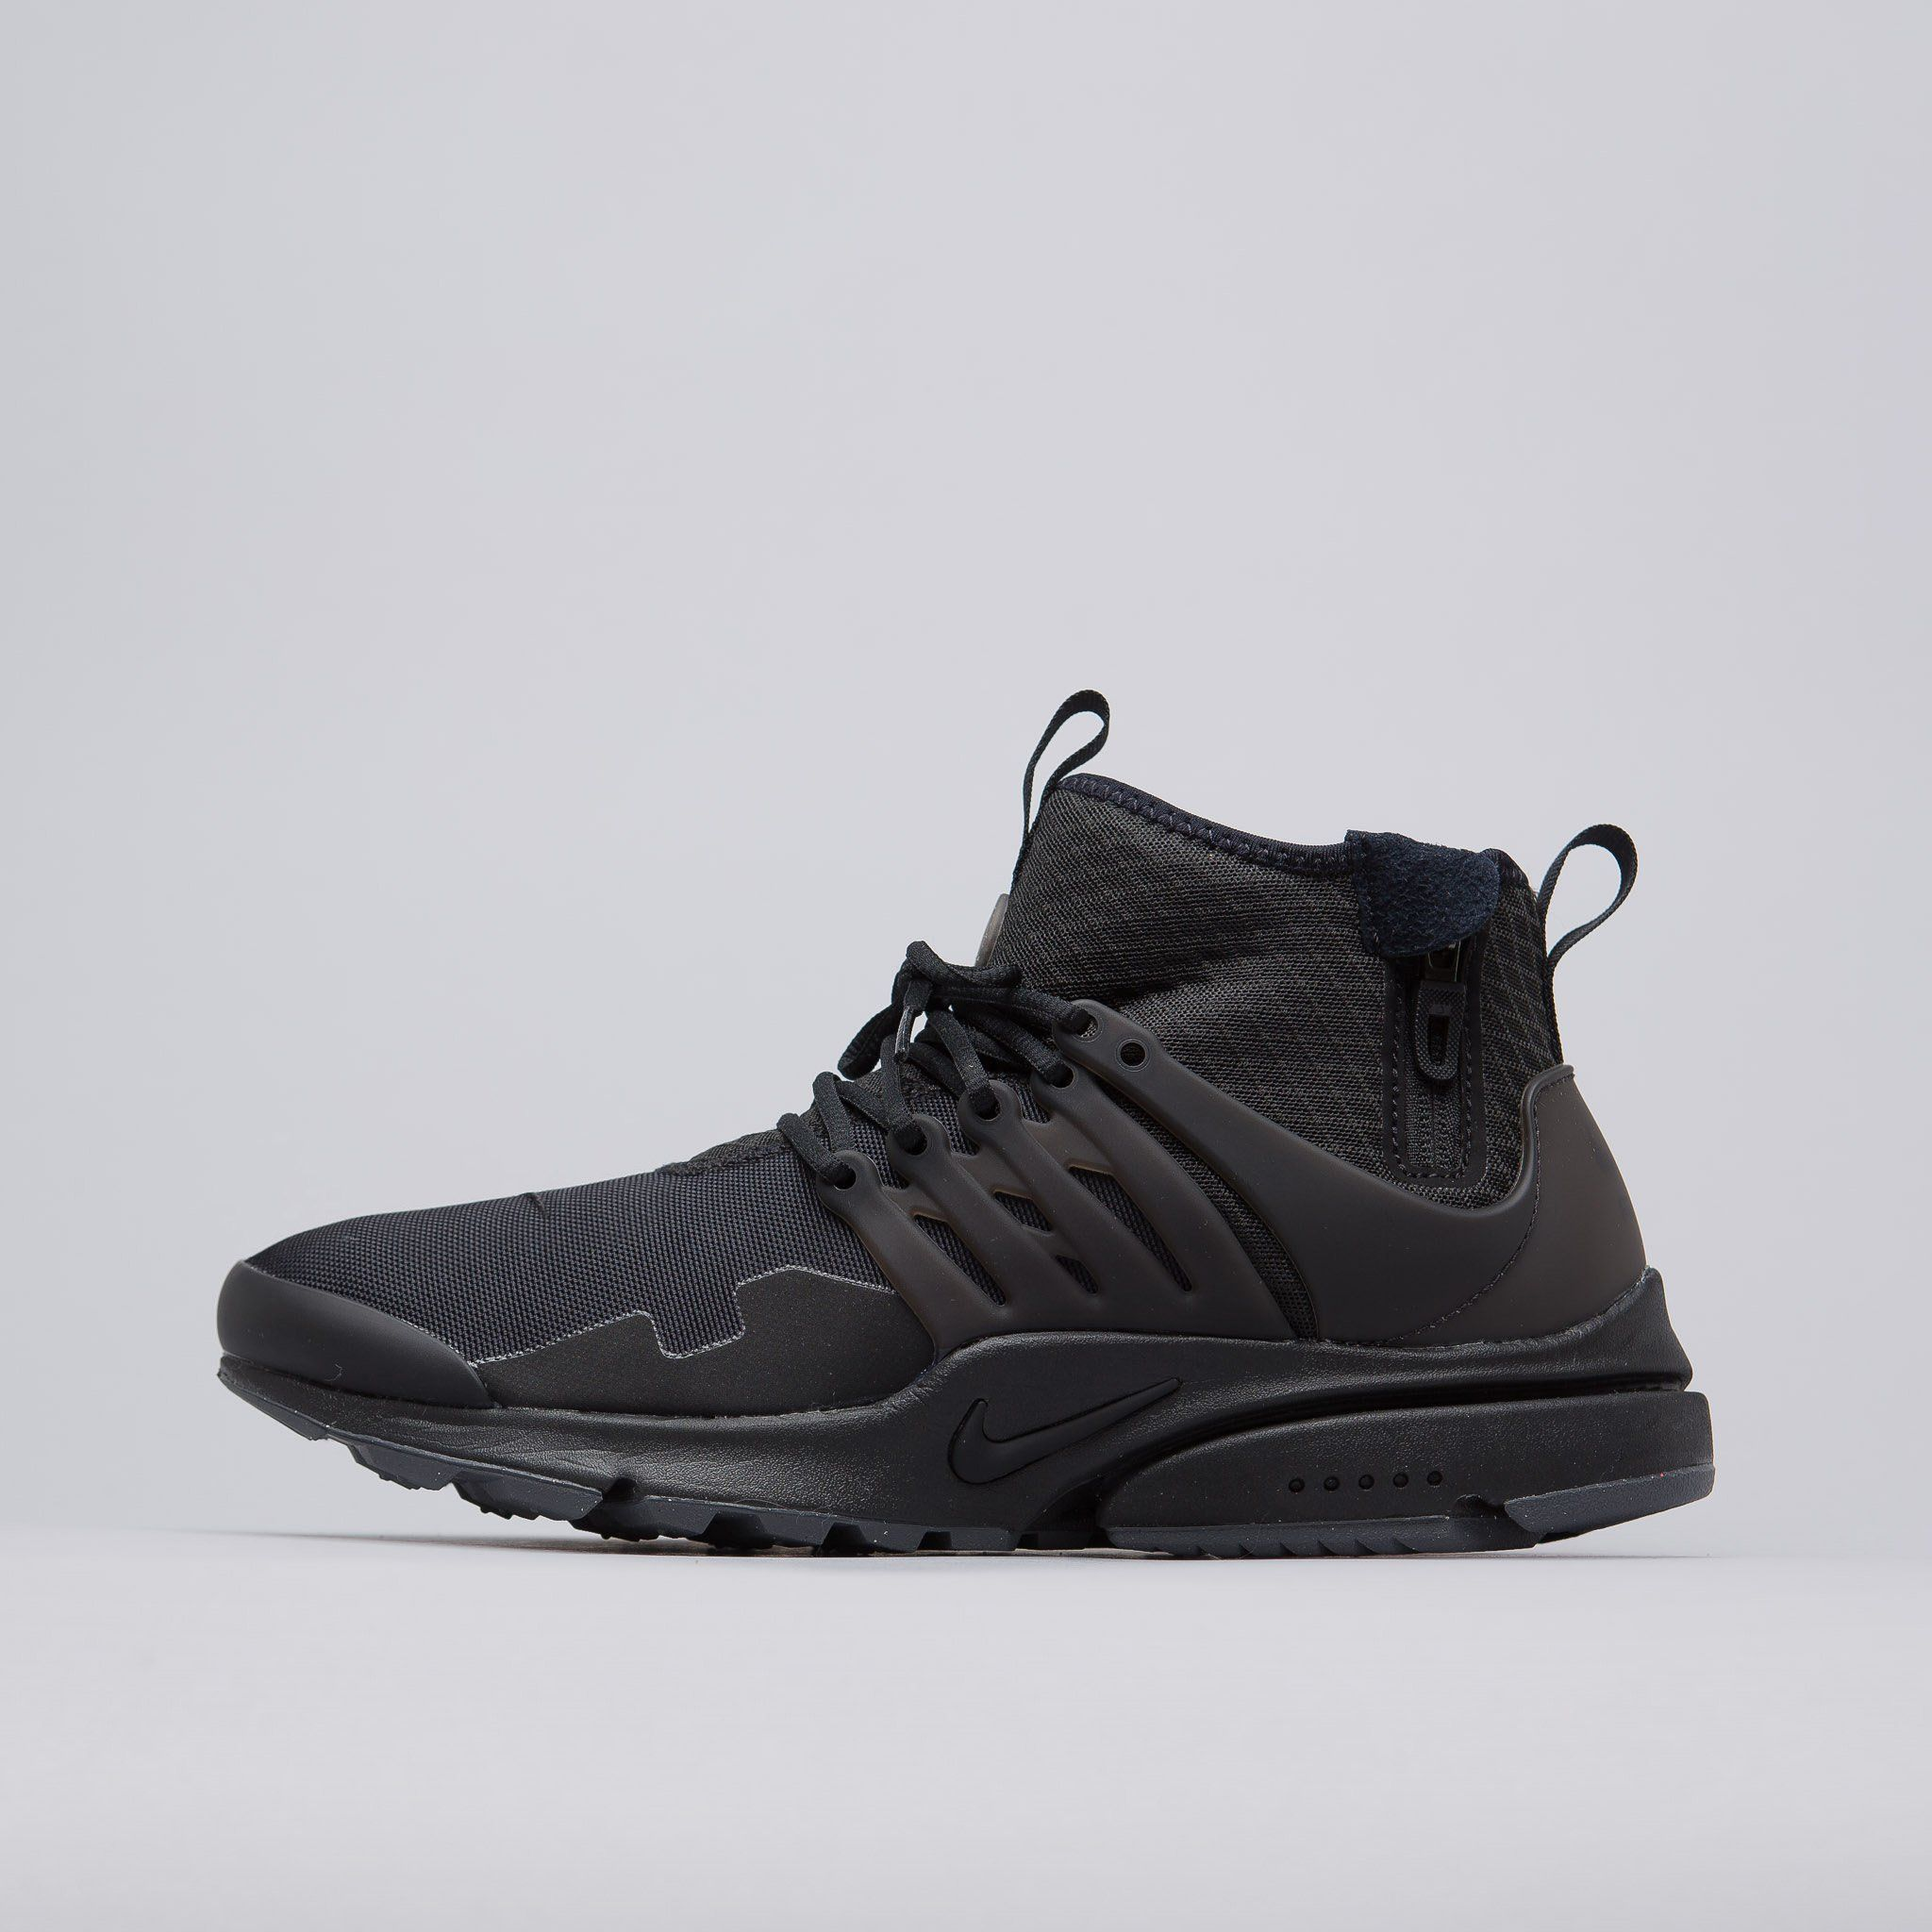 Buy Authentic Online Buy Cheap 100% Original NIKE AIR PRESTO MID UTILITY - FOOTWEAR - High-tops & sneakers Nike Shop For For Sale Manchester Cheap Price hsdXnRJe2